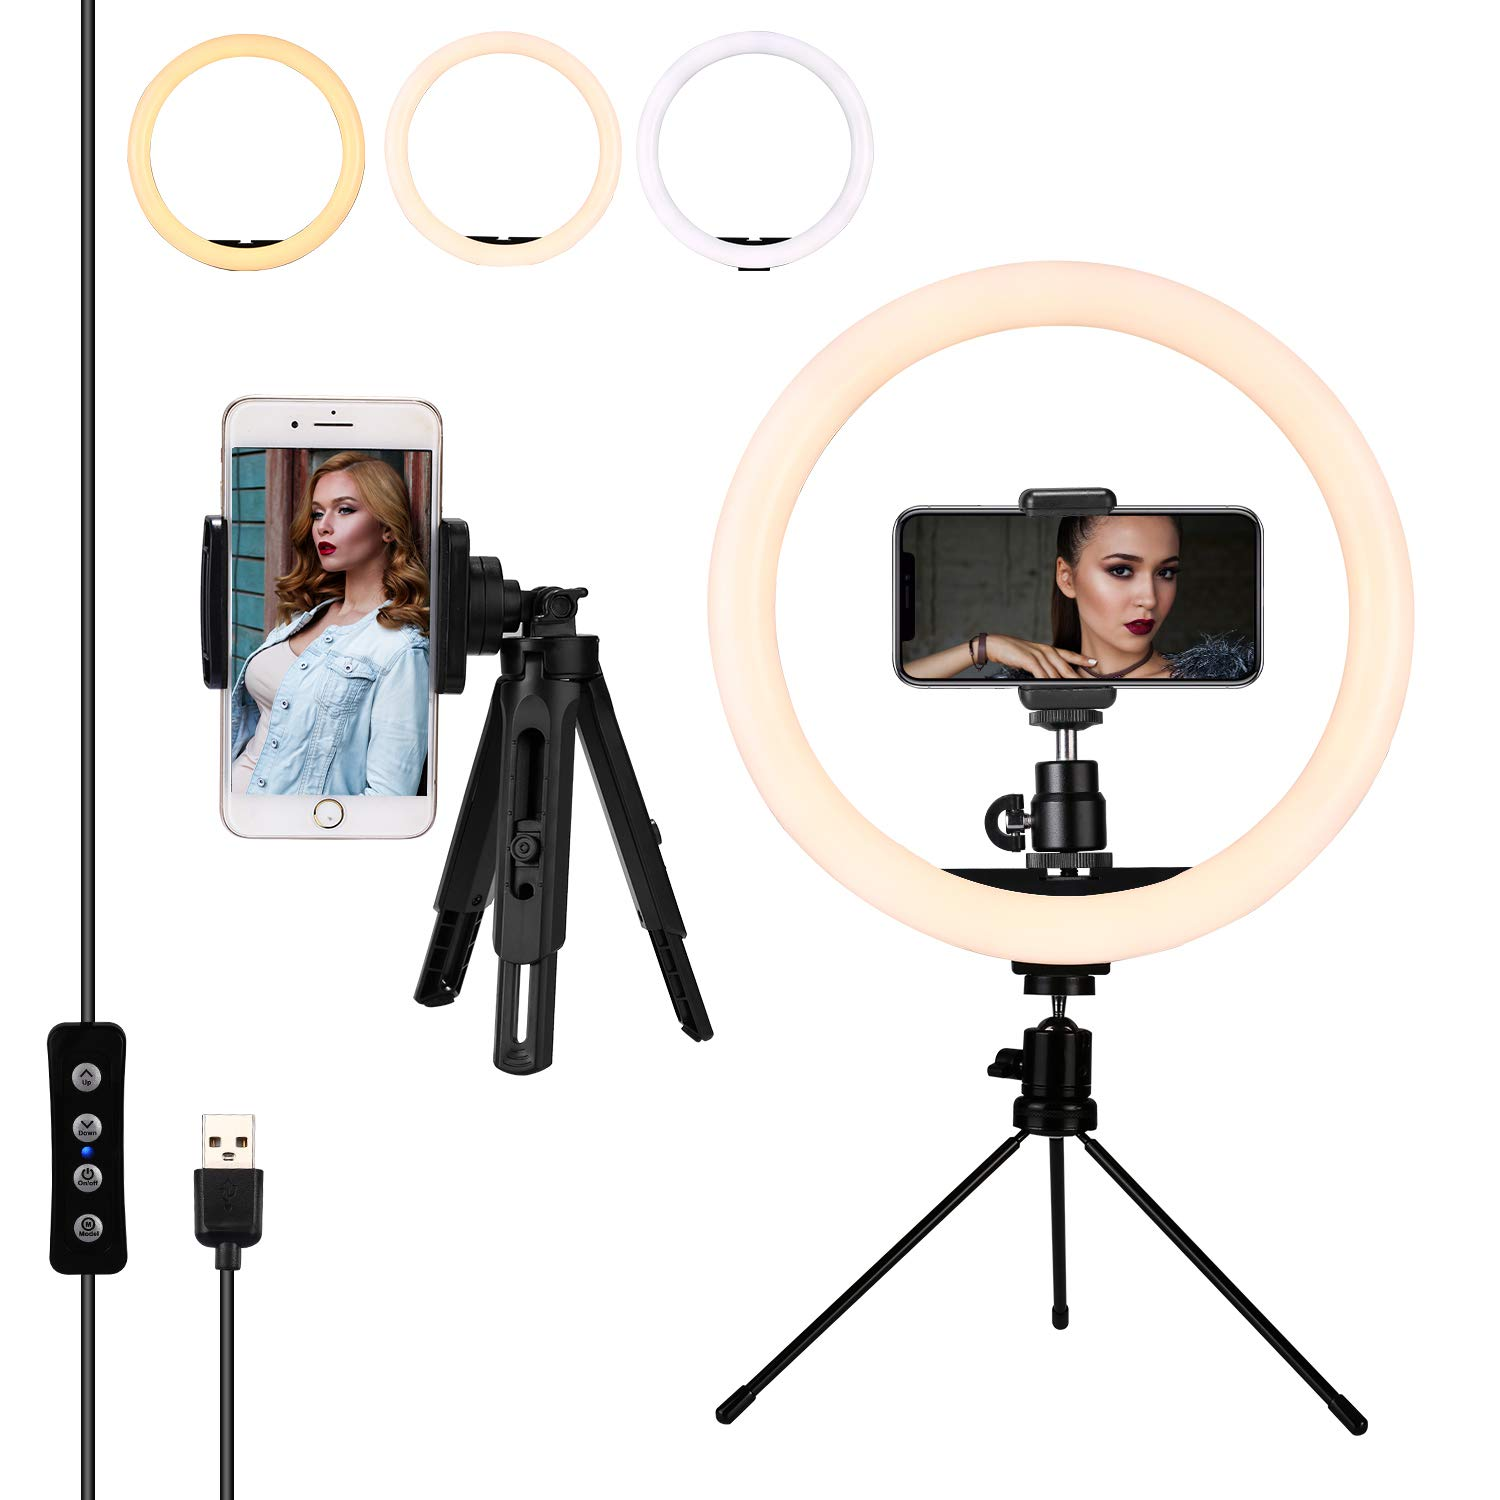 12 Inches LED Ring Light with Stand and 2 Cell Phone Holder, Brightness Dimmable from 10% to 100% for YouTube Video Shooting, Live Streaming, Selfie, Vlog, Makeup with 3 Color Modes,Black,Acrlux by Acrlux